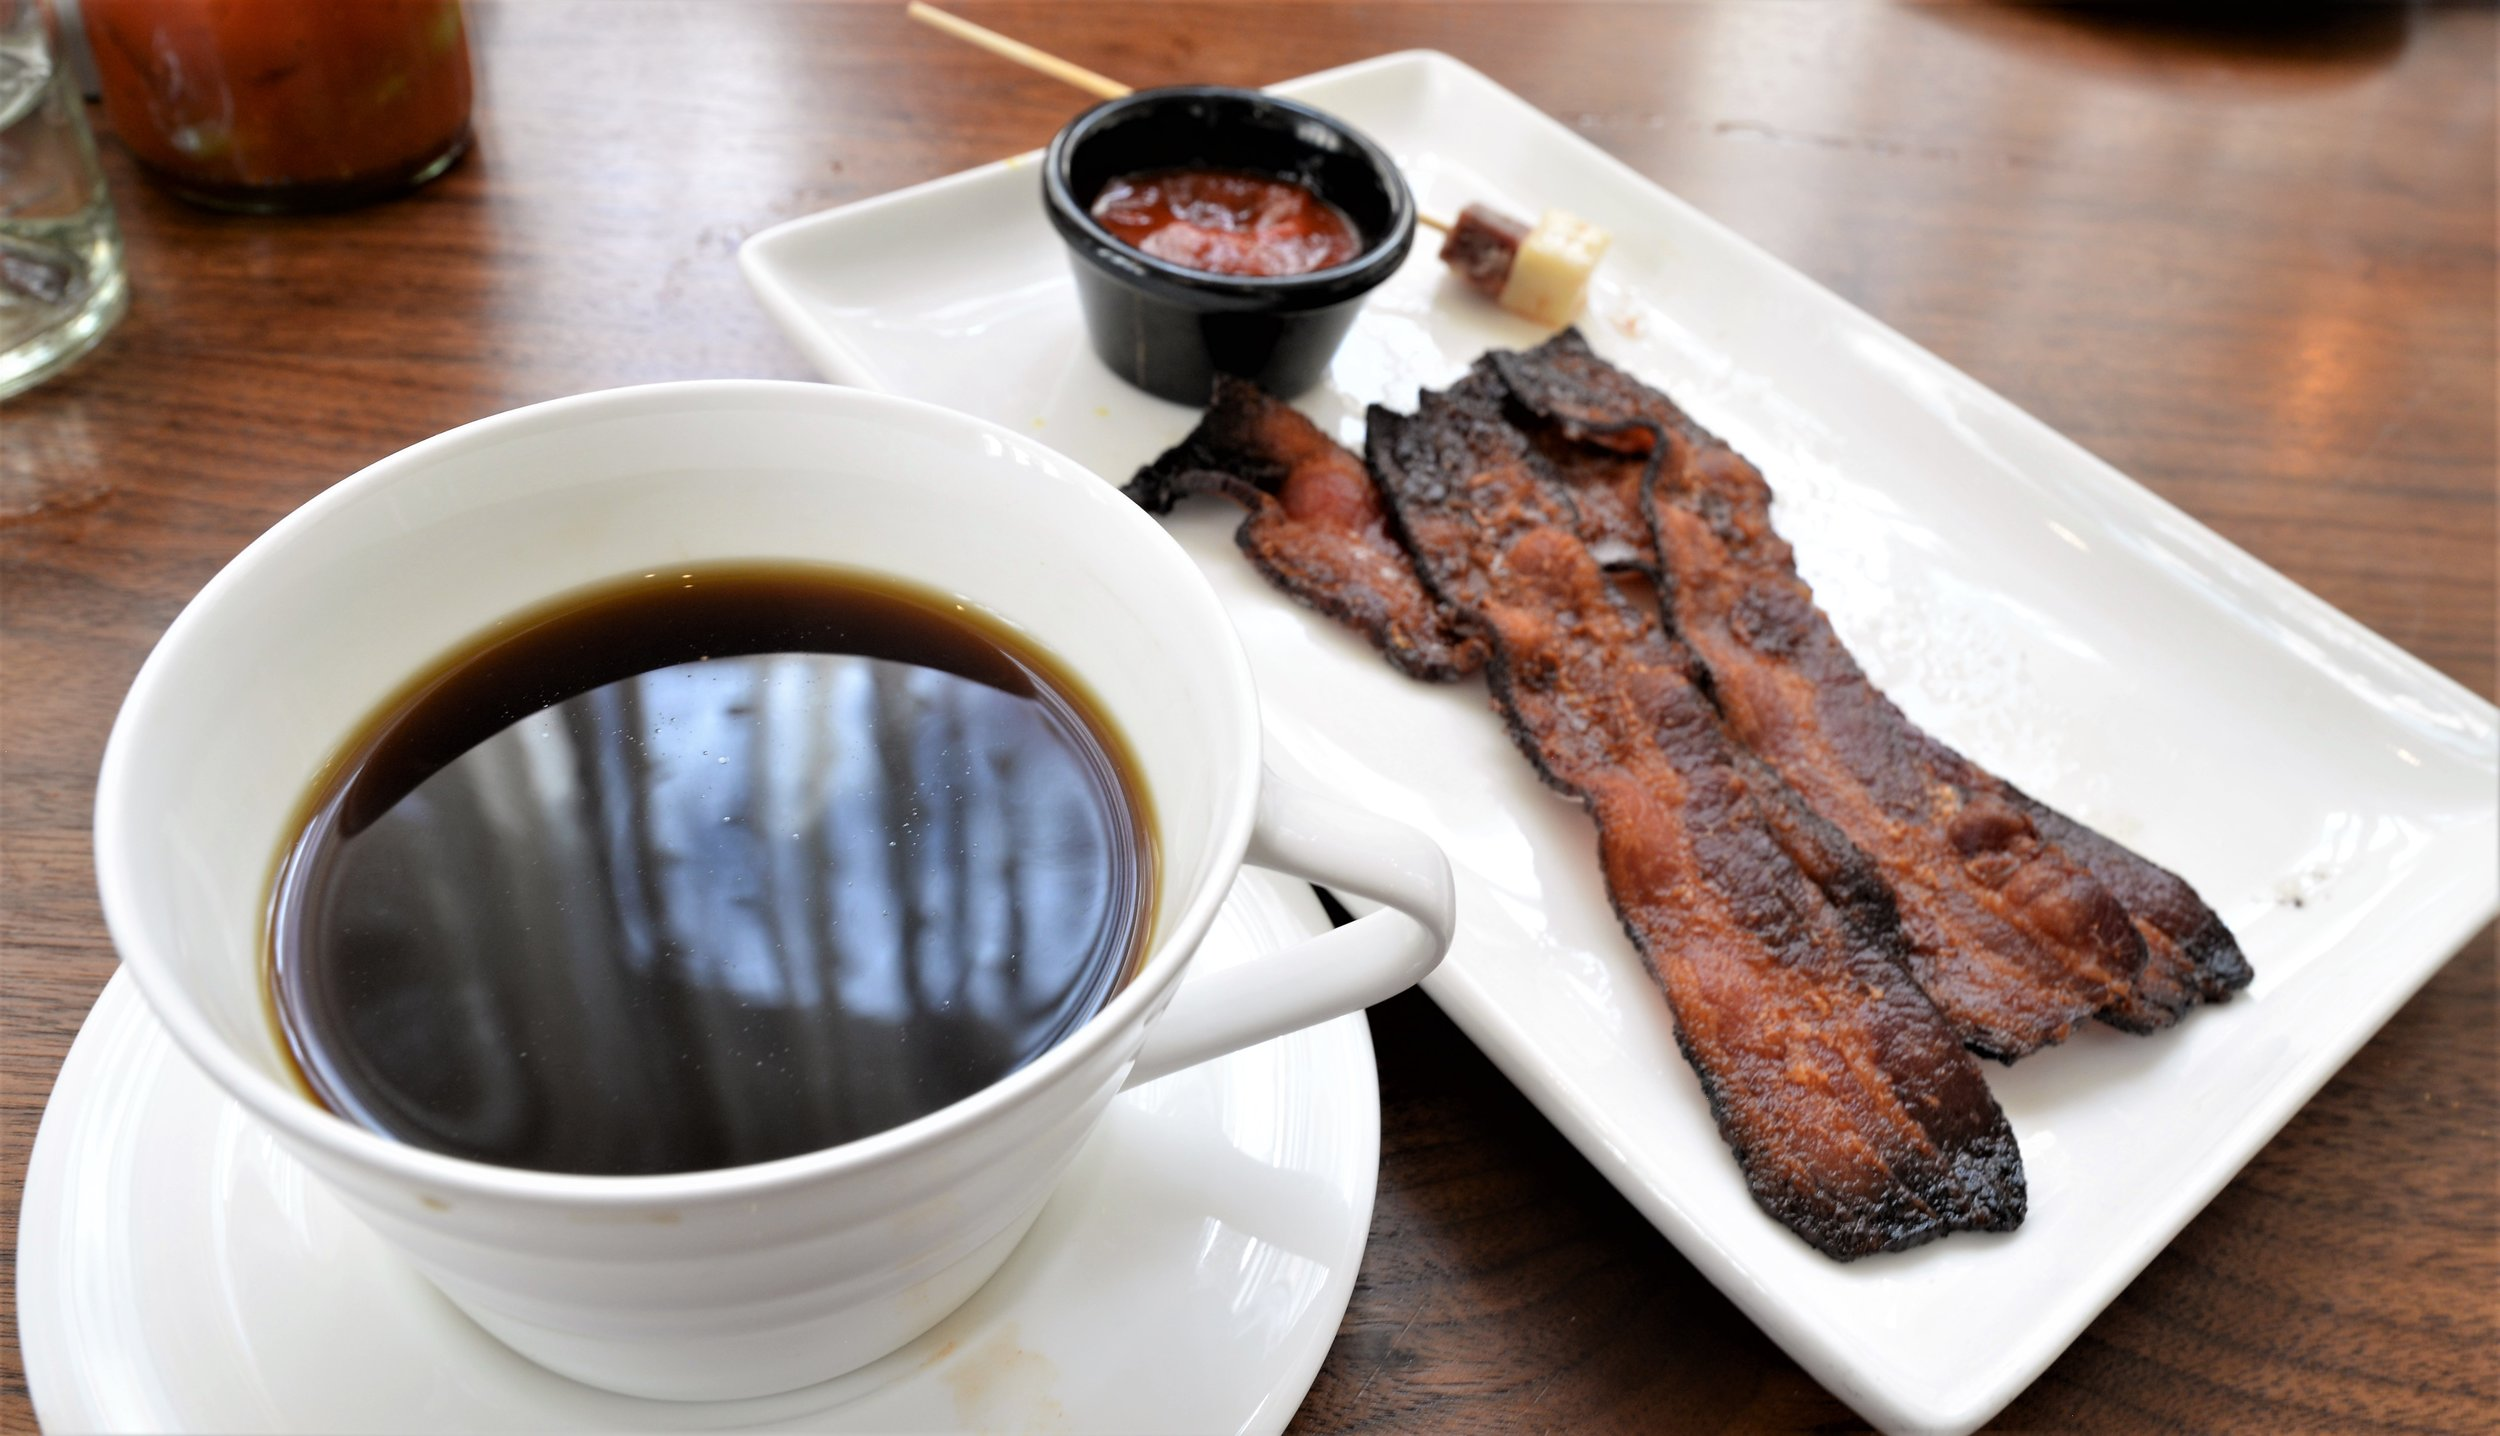 Coda coffee & side of bacon.